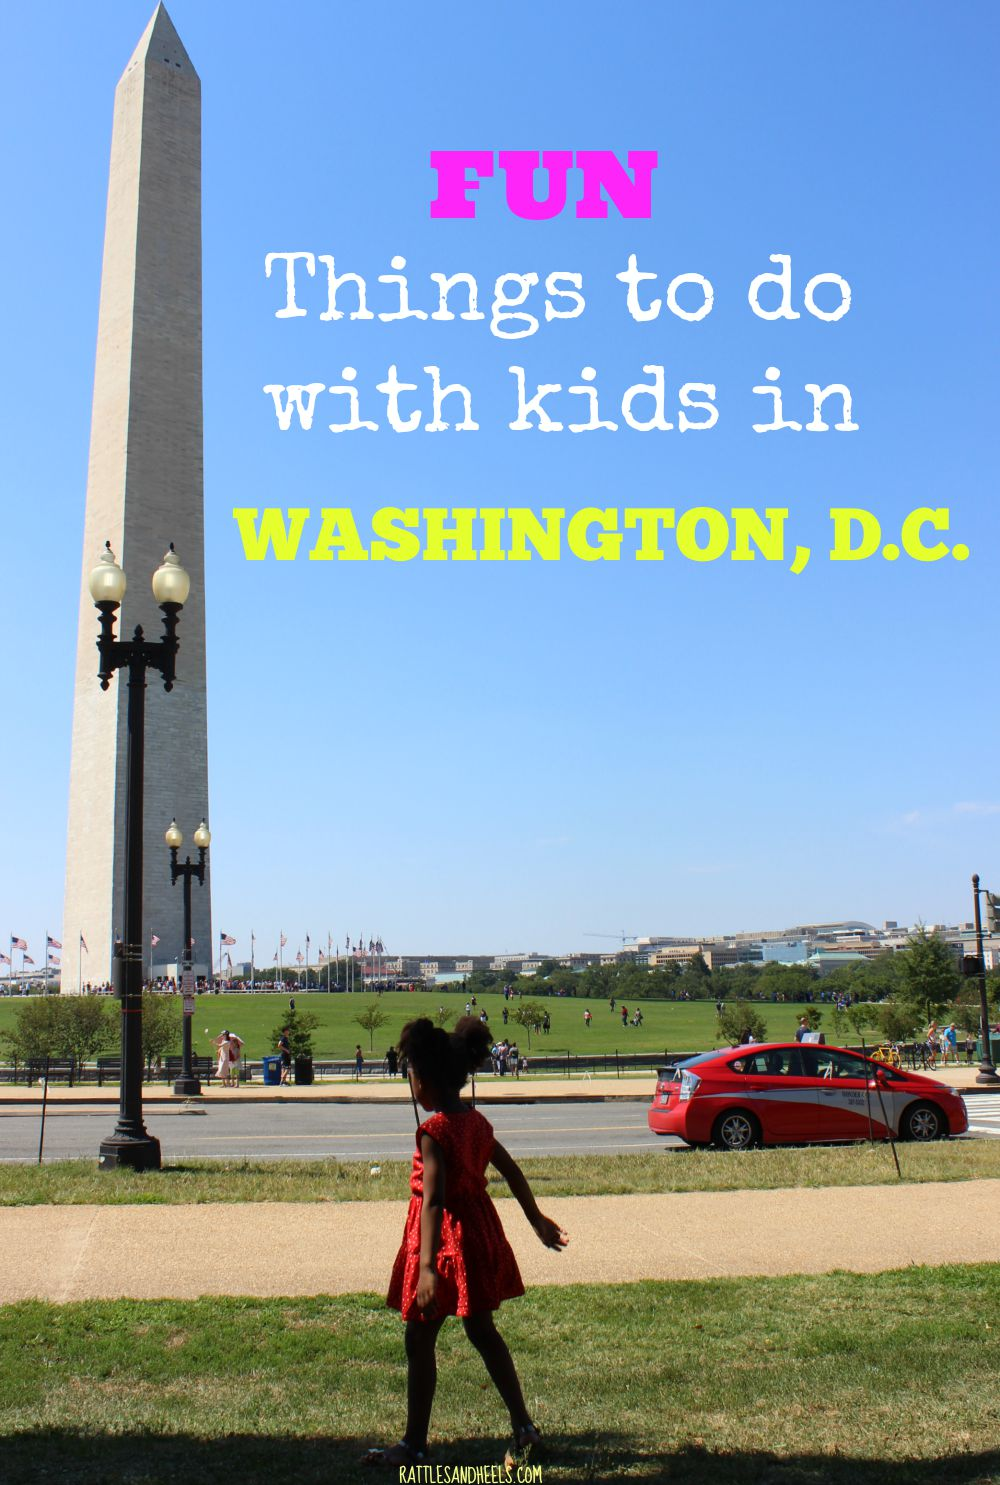 THINGS-TO-DO-WITH-KIDS-IN-DC